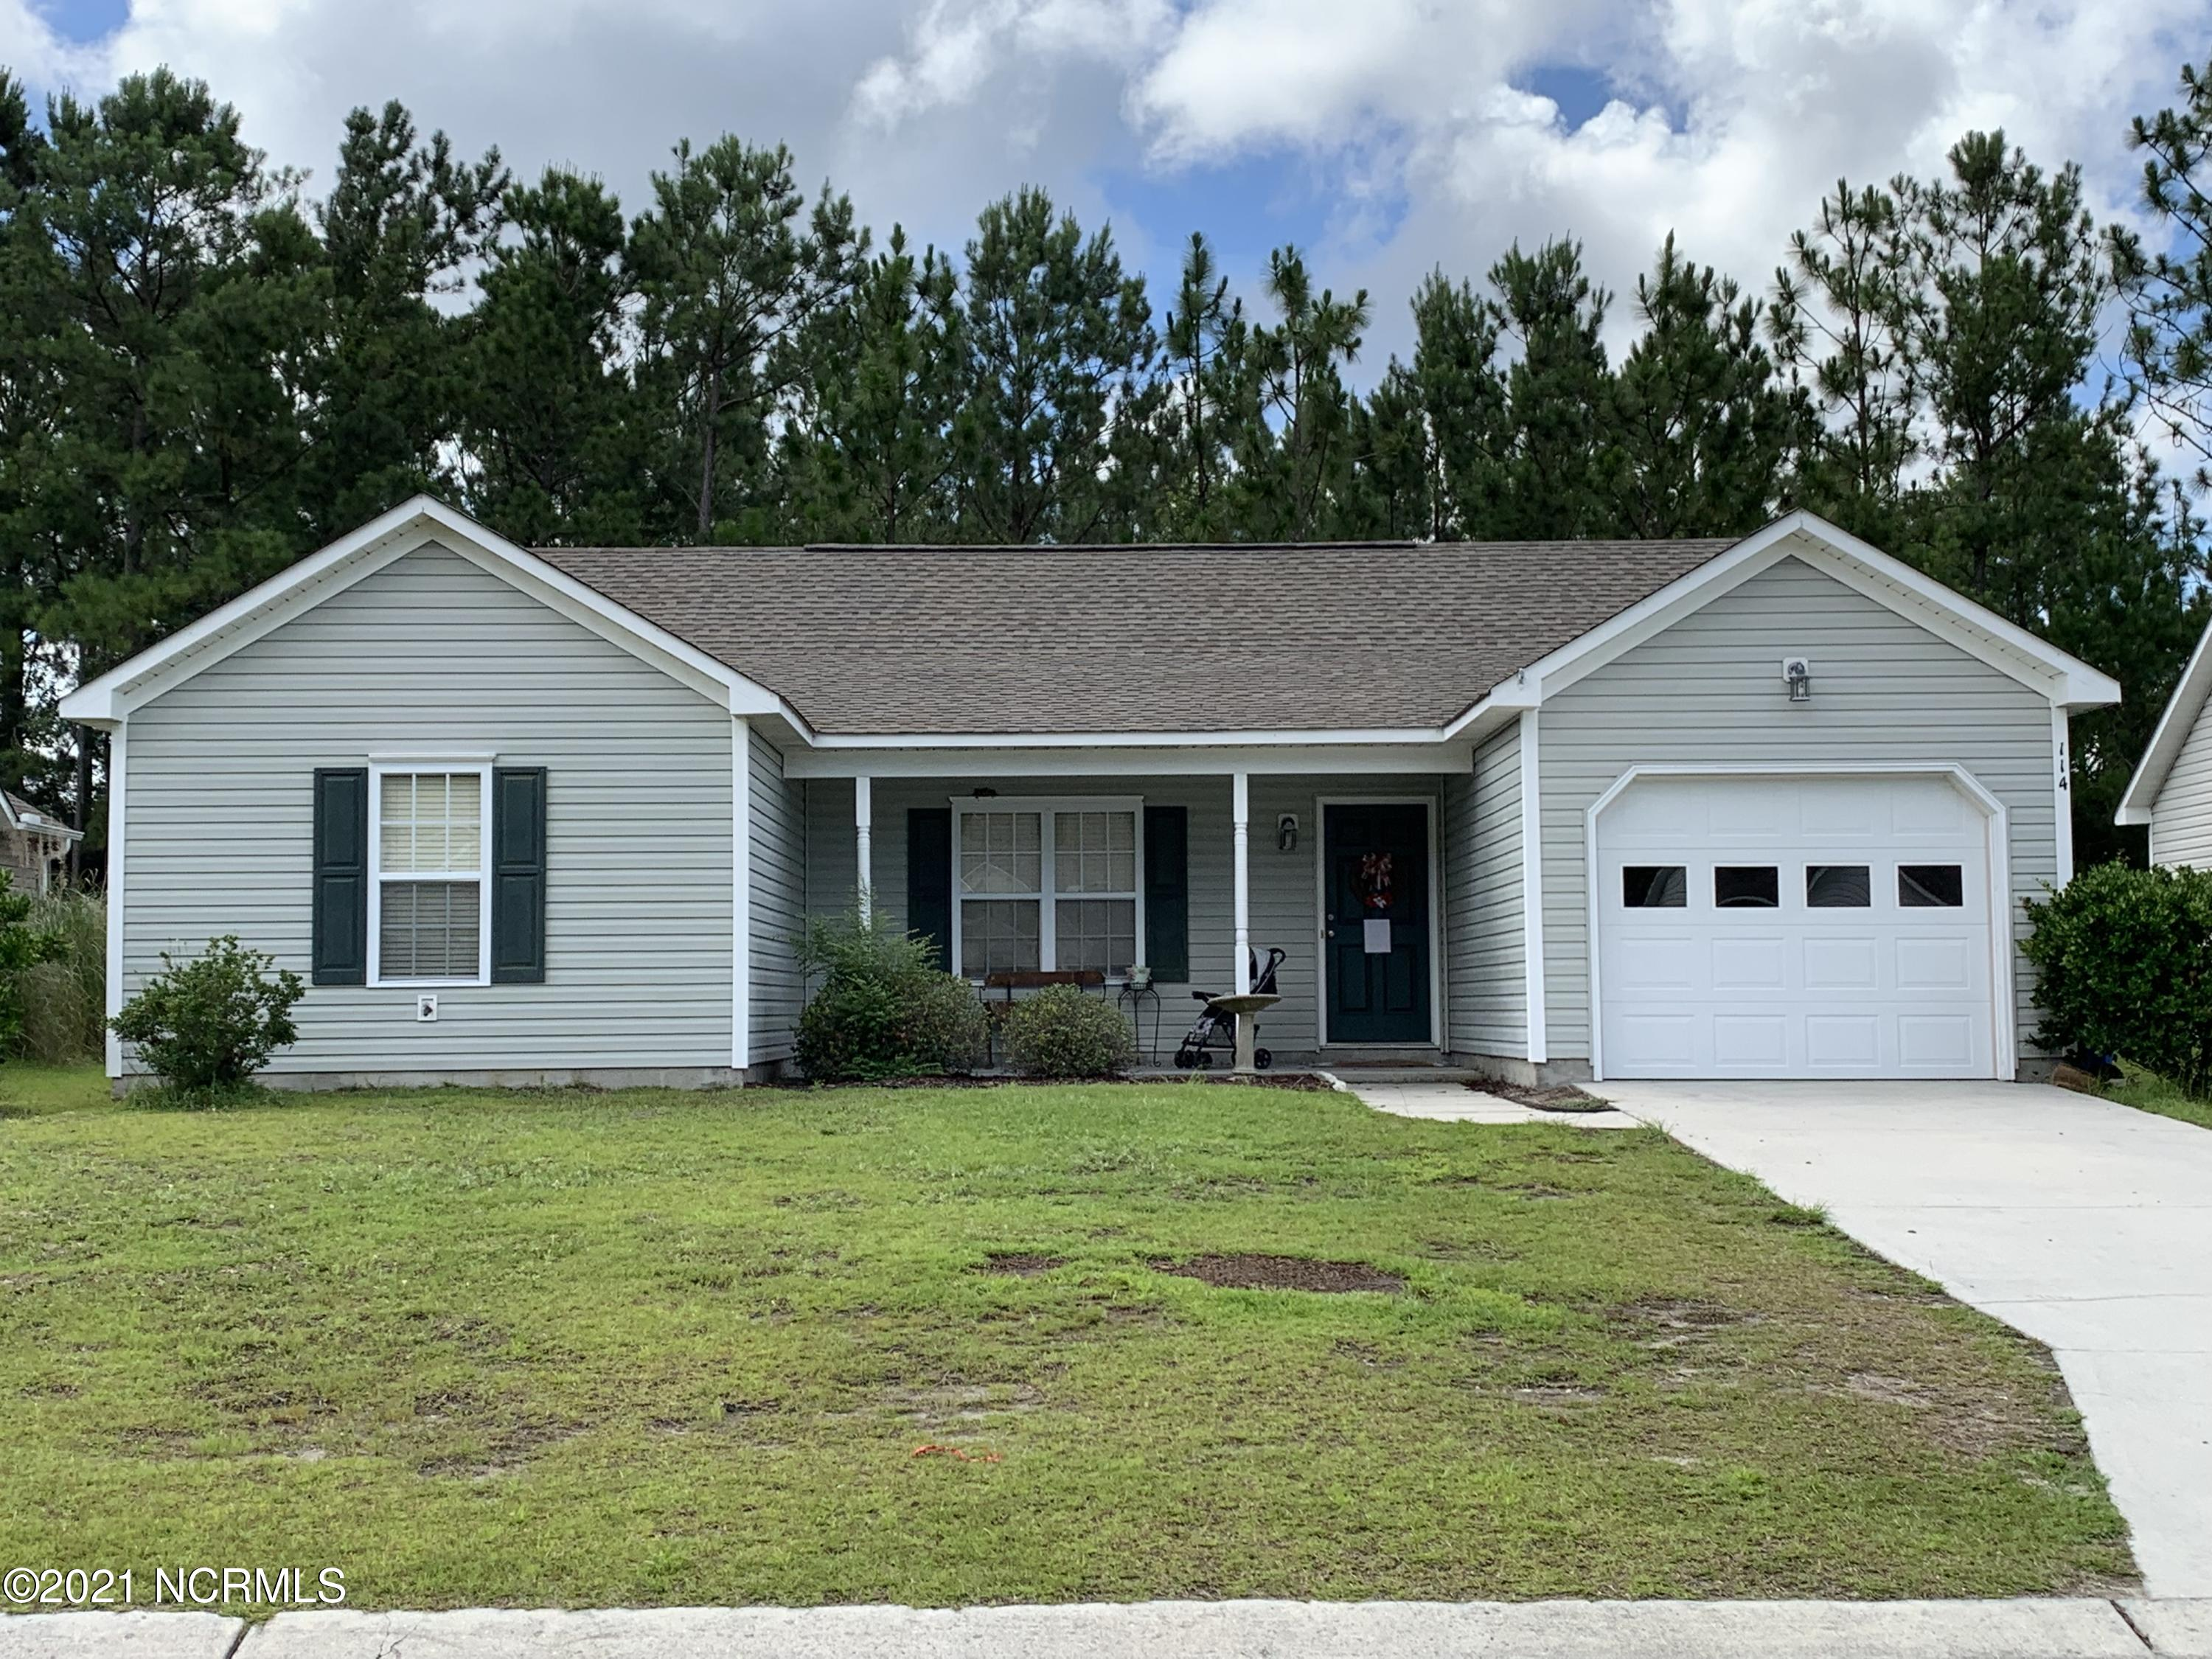 4-bedroom 2 bath home conveniently located to local beaches and Camp Lejeune. Home is currently occupied by a long-term tenant and has a strong rental history. Details will be provided upon request.